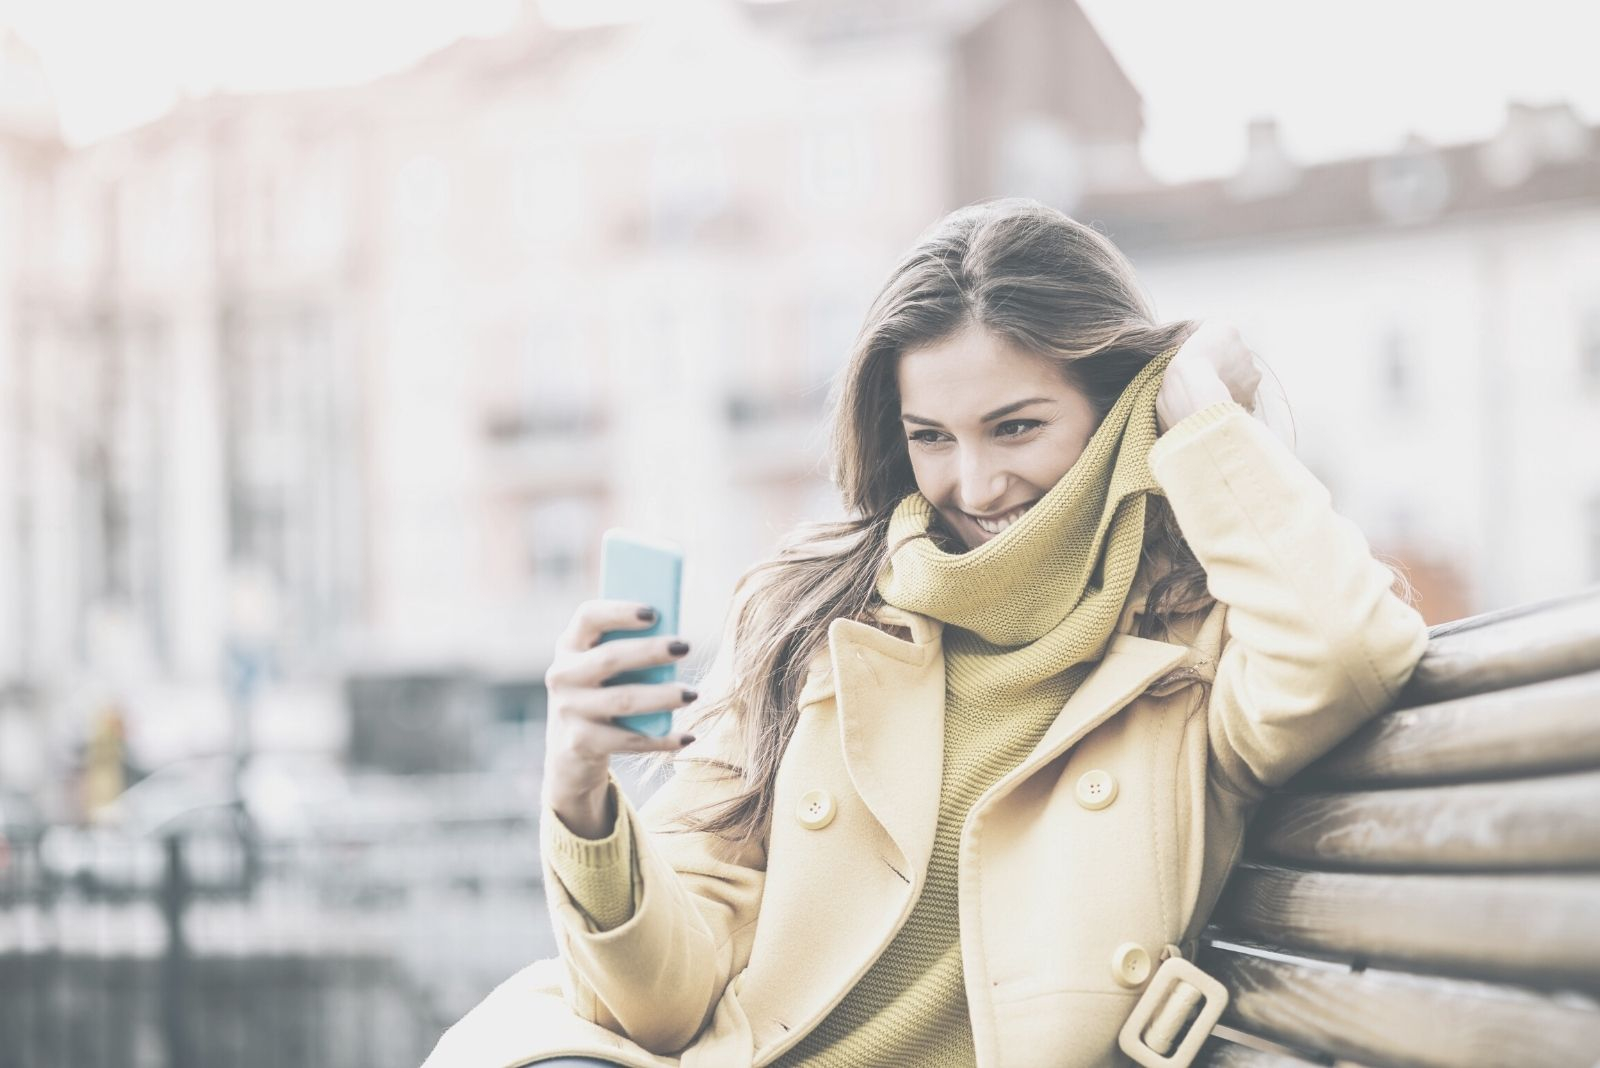 smiling woman texting and sitting in the bench outdoors wearing winter clothes